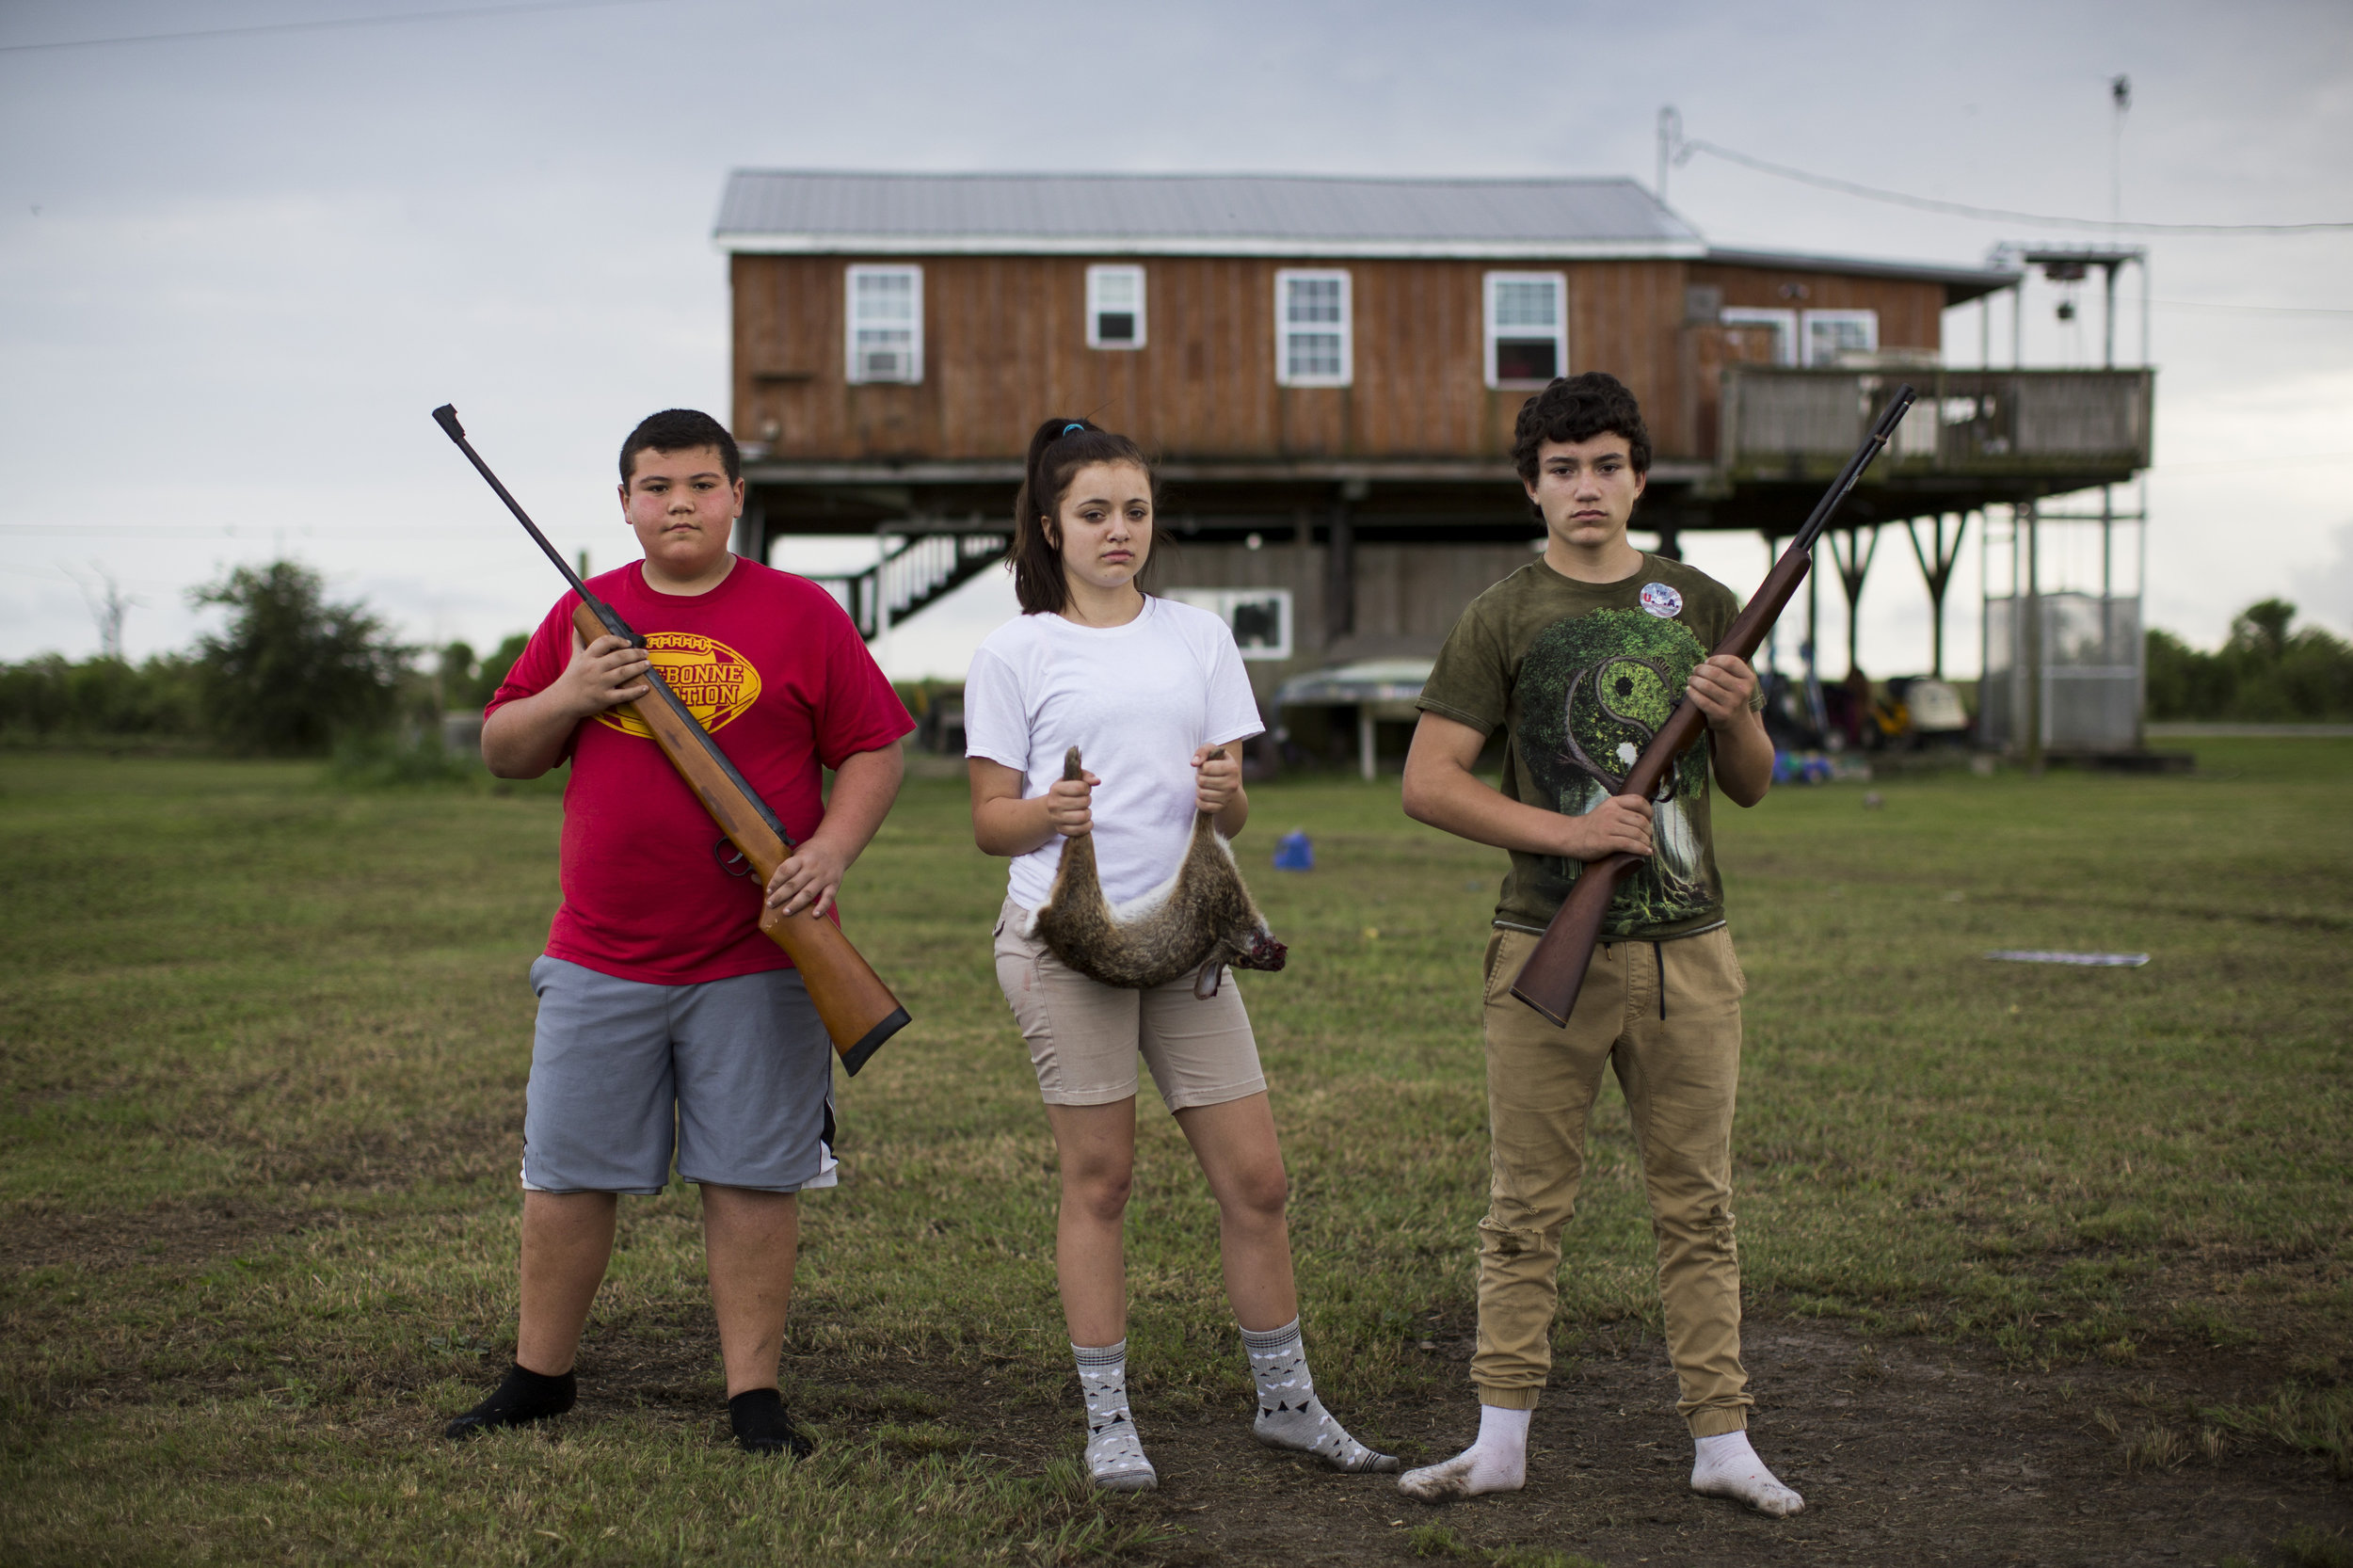 "Reggie Parfait, left, Juliette Brunet, and Howard Brunet stand for a portrait behind their uncle Chris Brunet's house on Isle de Jean Charles, Louisiana, USA on April 21, 2016. ""We have to be careful with the .22; we need those shells for food,"" Chris, who is raising Juliette and Howard, said. Because they do not have a car and Chris is in a wheelchair, they cannot always get off of the island to get groceries. Instead, they make do with the limited resources the island can still provide. On this night, they made rabbit stew. Chris Brunet is the eighth generation in his family to live on the island as a member of the tribe. In one generation, ""this island has gone from being self-sufficient and fertile to relying on grocery stores,"" he says. ""What you see now is a skeleton of the island it once was."" Since 1955, the Isle de Jean Charles Band of Biloxi-Chitimacha-Choctaw Tribe has lost 98 percent of its land to the encroaching Gulf waters. The Tribe's identity, food, and culture have slowly eroded with the land. In response, the Department of Housing and Urban Development awarded the Tribe $48 million to relocate through the National Disaster Resilience Competition. As the effects of climate change transform coastal communities around the world, the people of Isle de Jean Charles will be only 60 of the estimated 200 million people in coastal communities globally who could be displaced by 2050 because of climate change.  This image was a part of  Th  e First Official Climate Refugees in the U.S. Race Against Time  story I wrote and photographed for National Geographic."